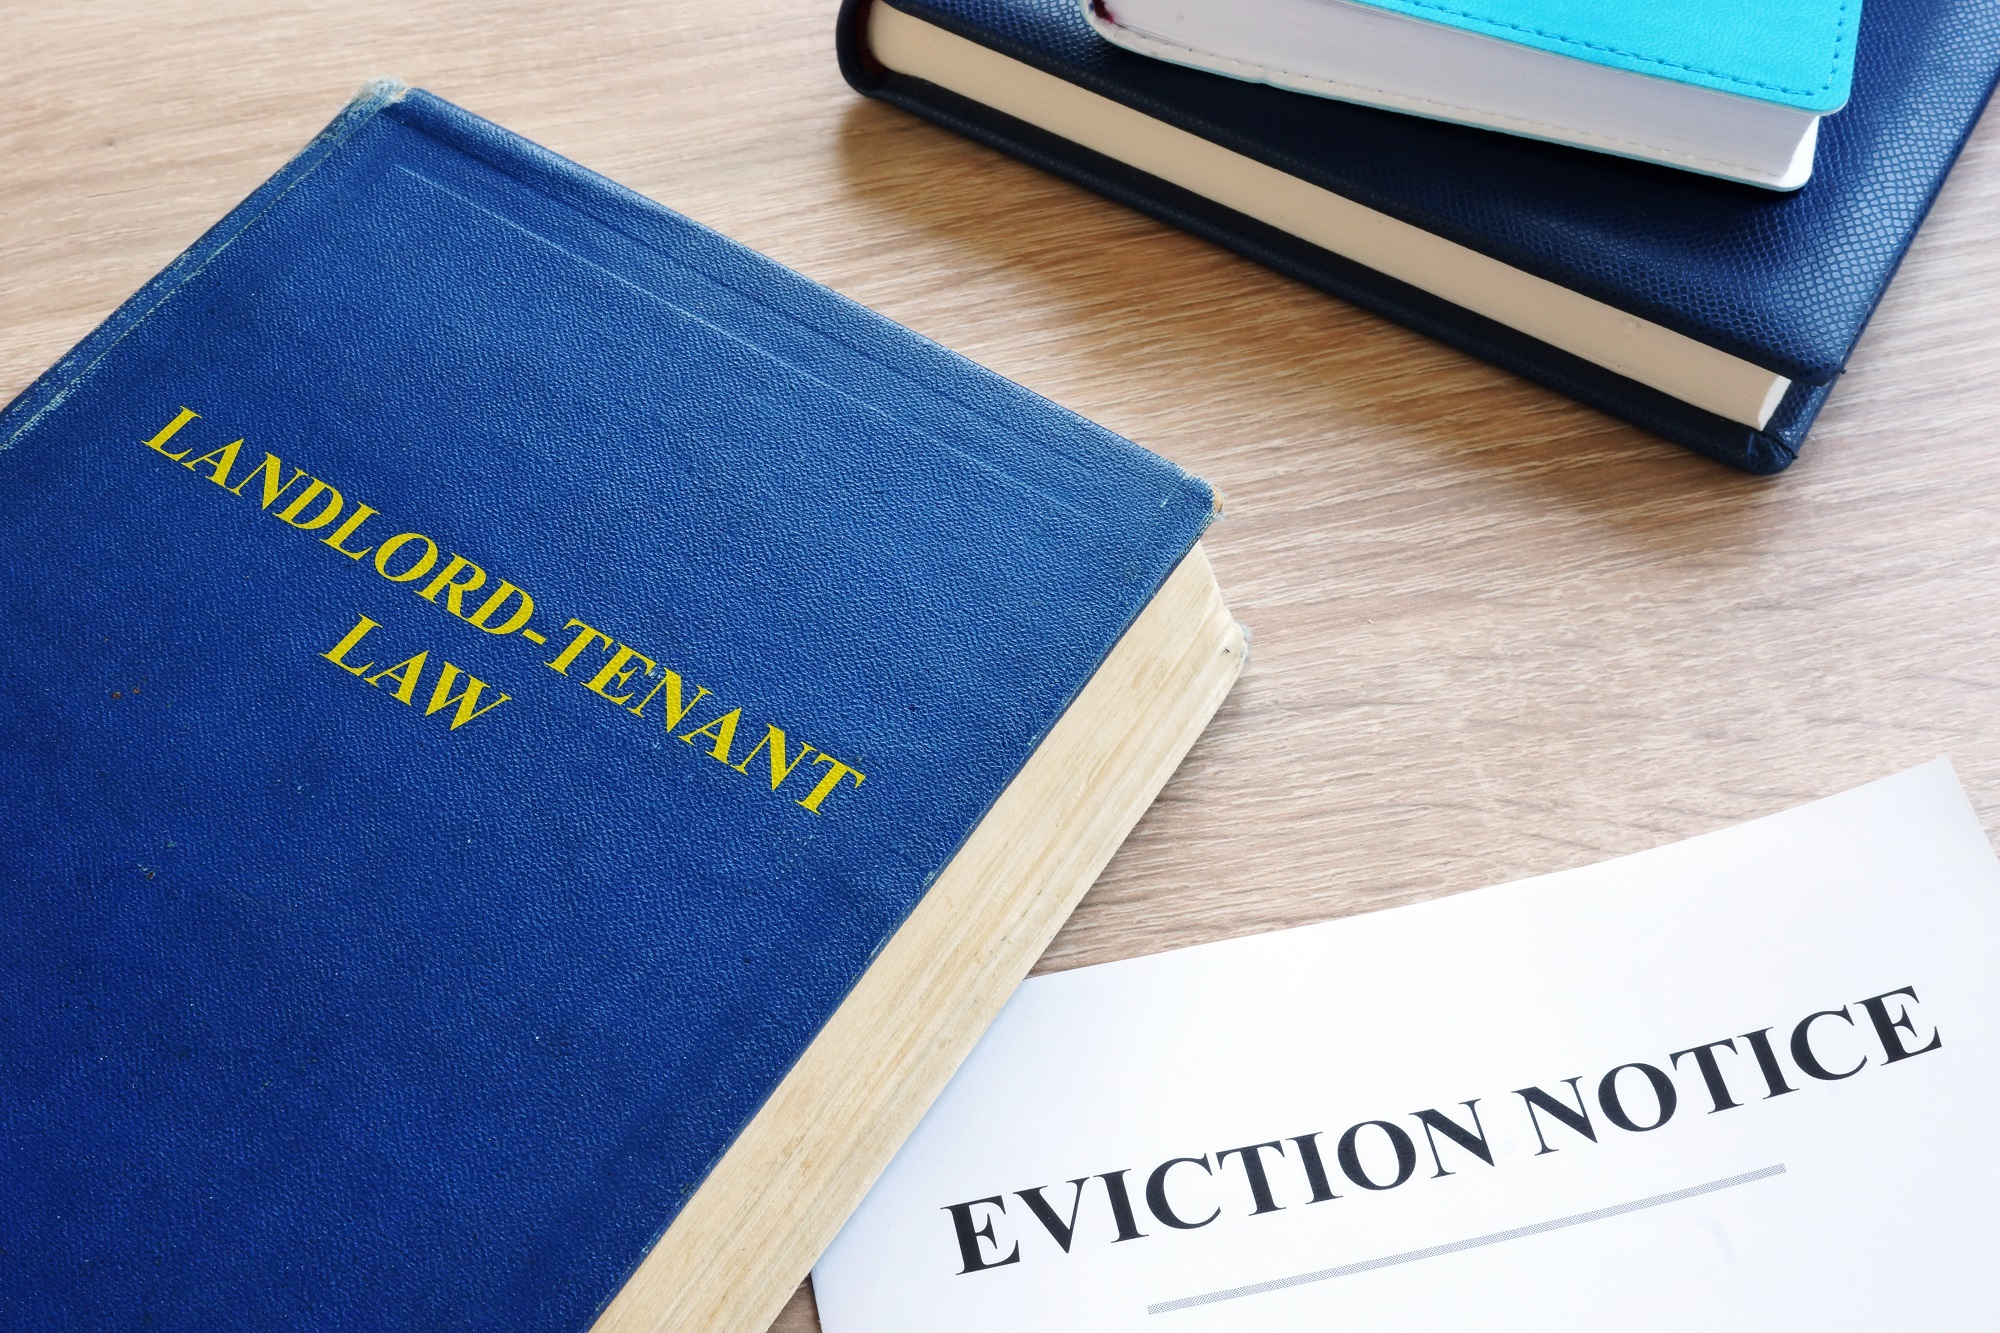 Evictions Increase By 50% In Last 5 Years